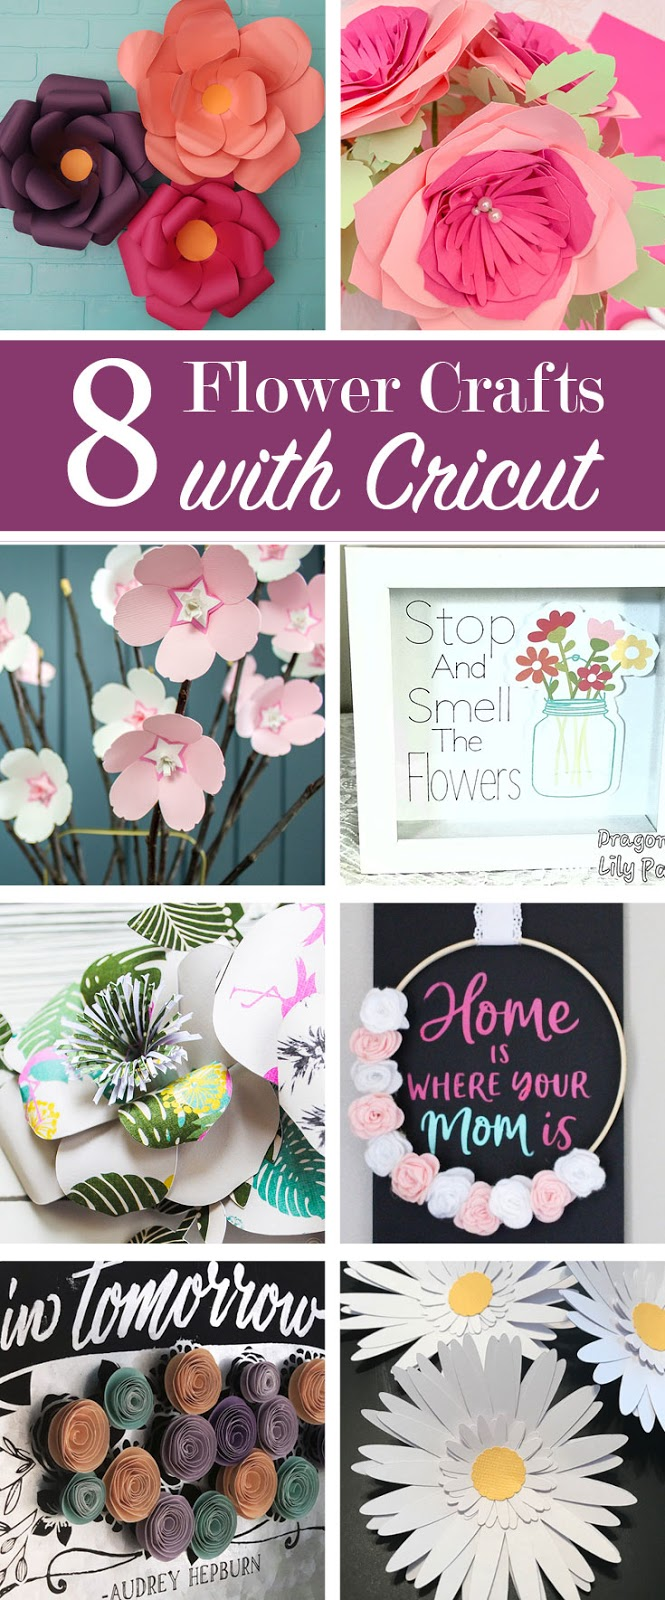 8 Flower Ideas made with Cricut for the May Create and Craft with Cricut Challenge